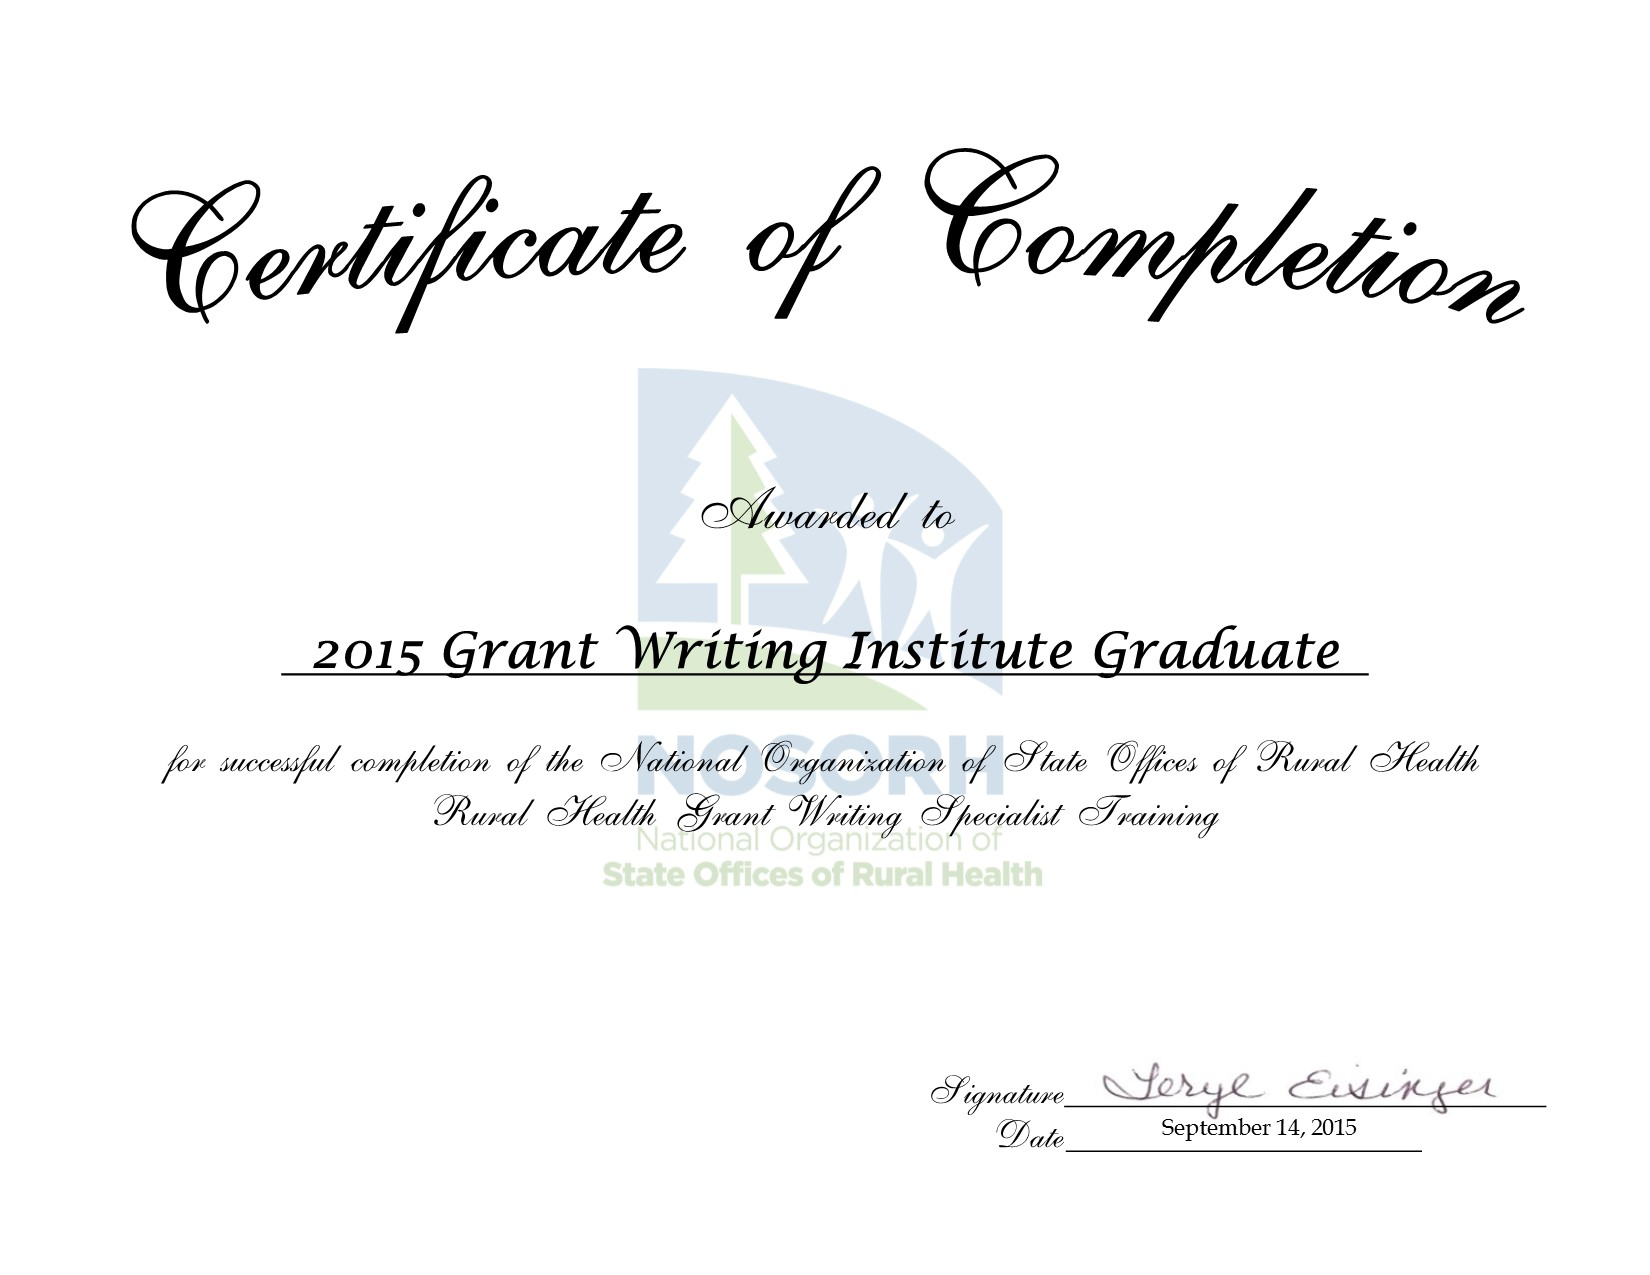 Grant writing certificate gallery editable certificate for Calligraphy certificate templates